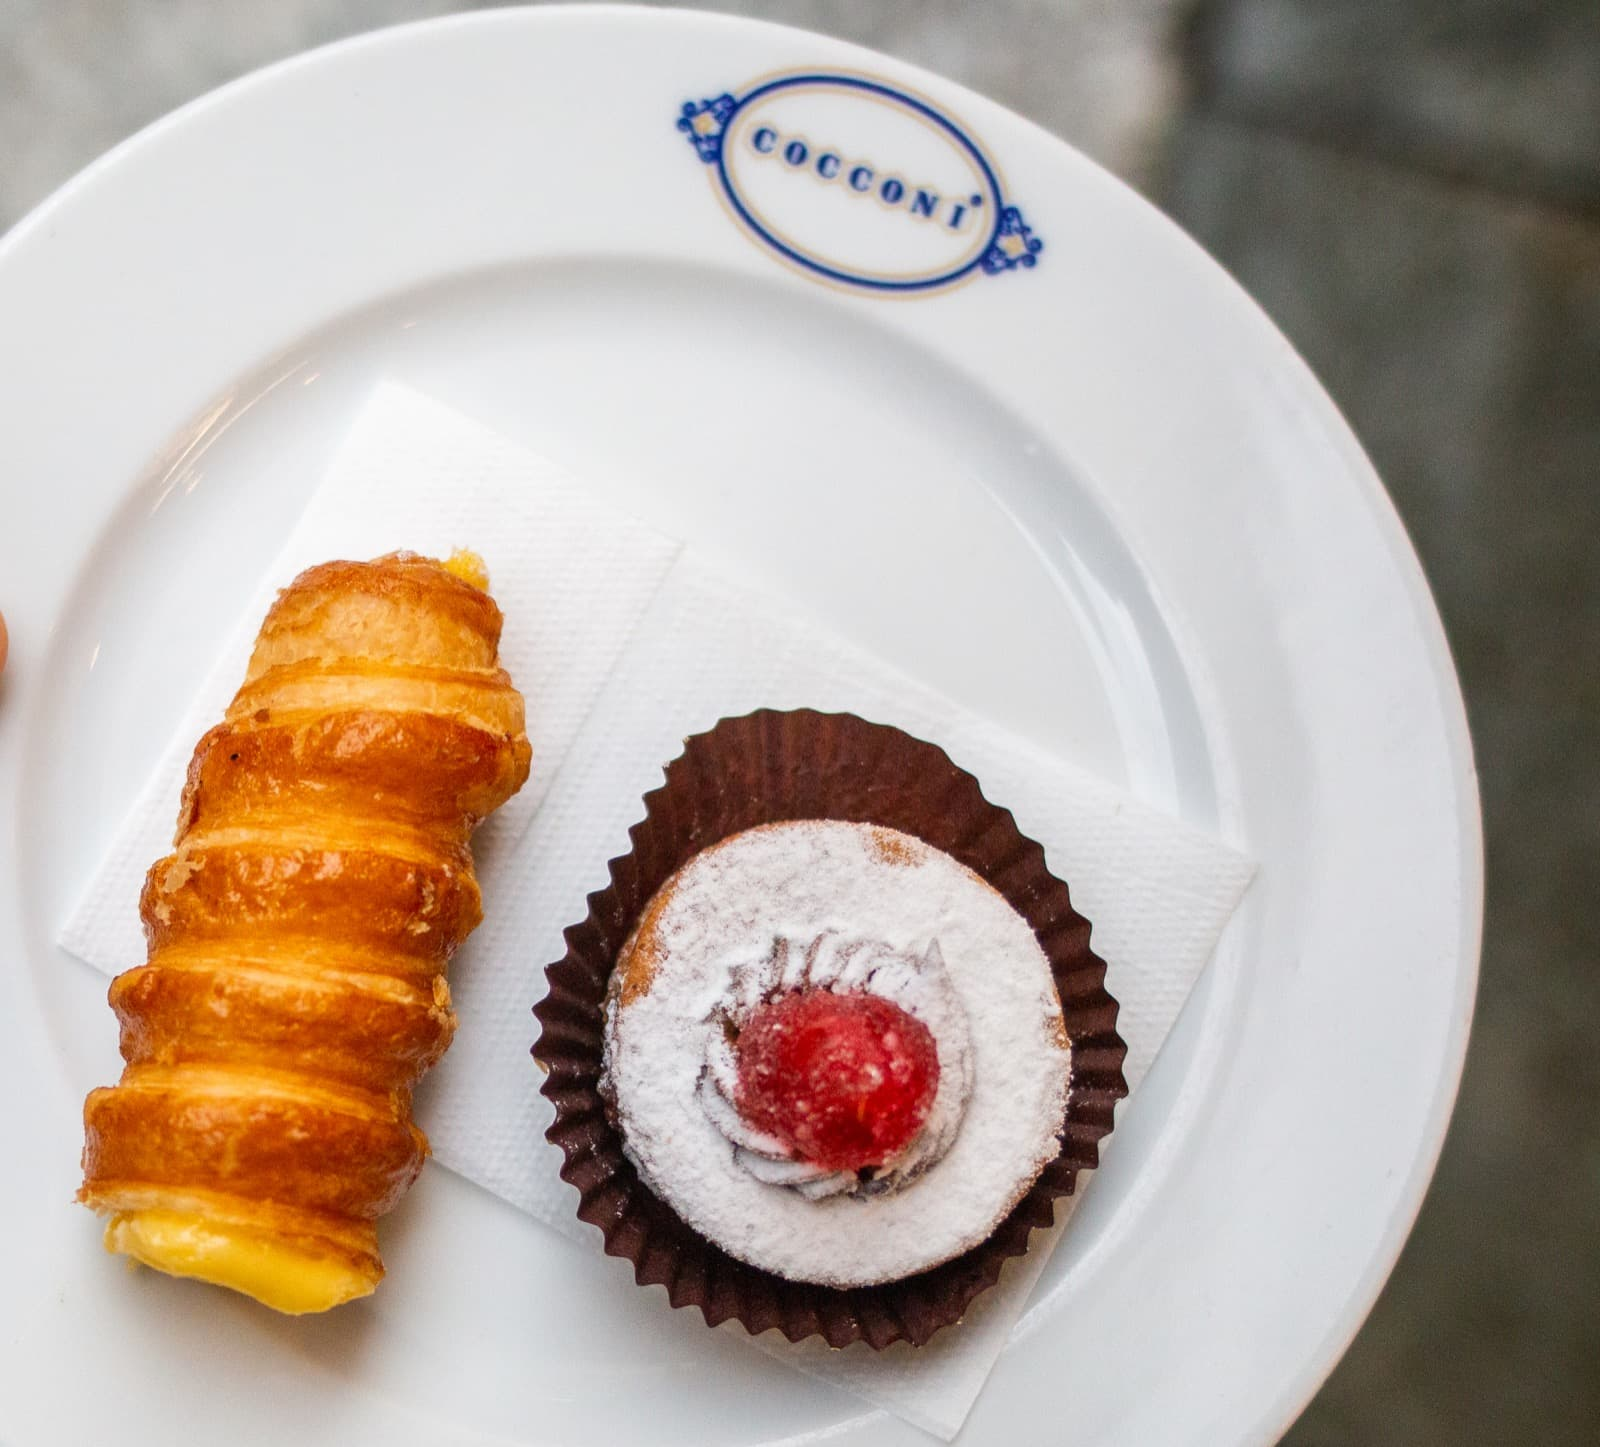 Pastries at Pasticceria Cocconi, Parma Ph. 2FoodTrippers